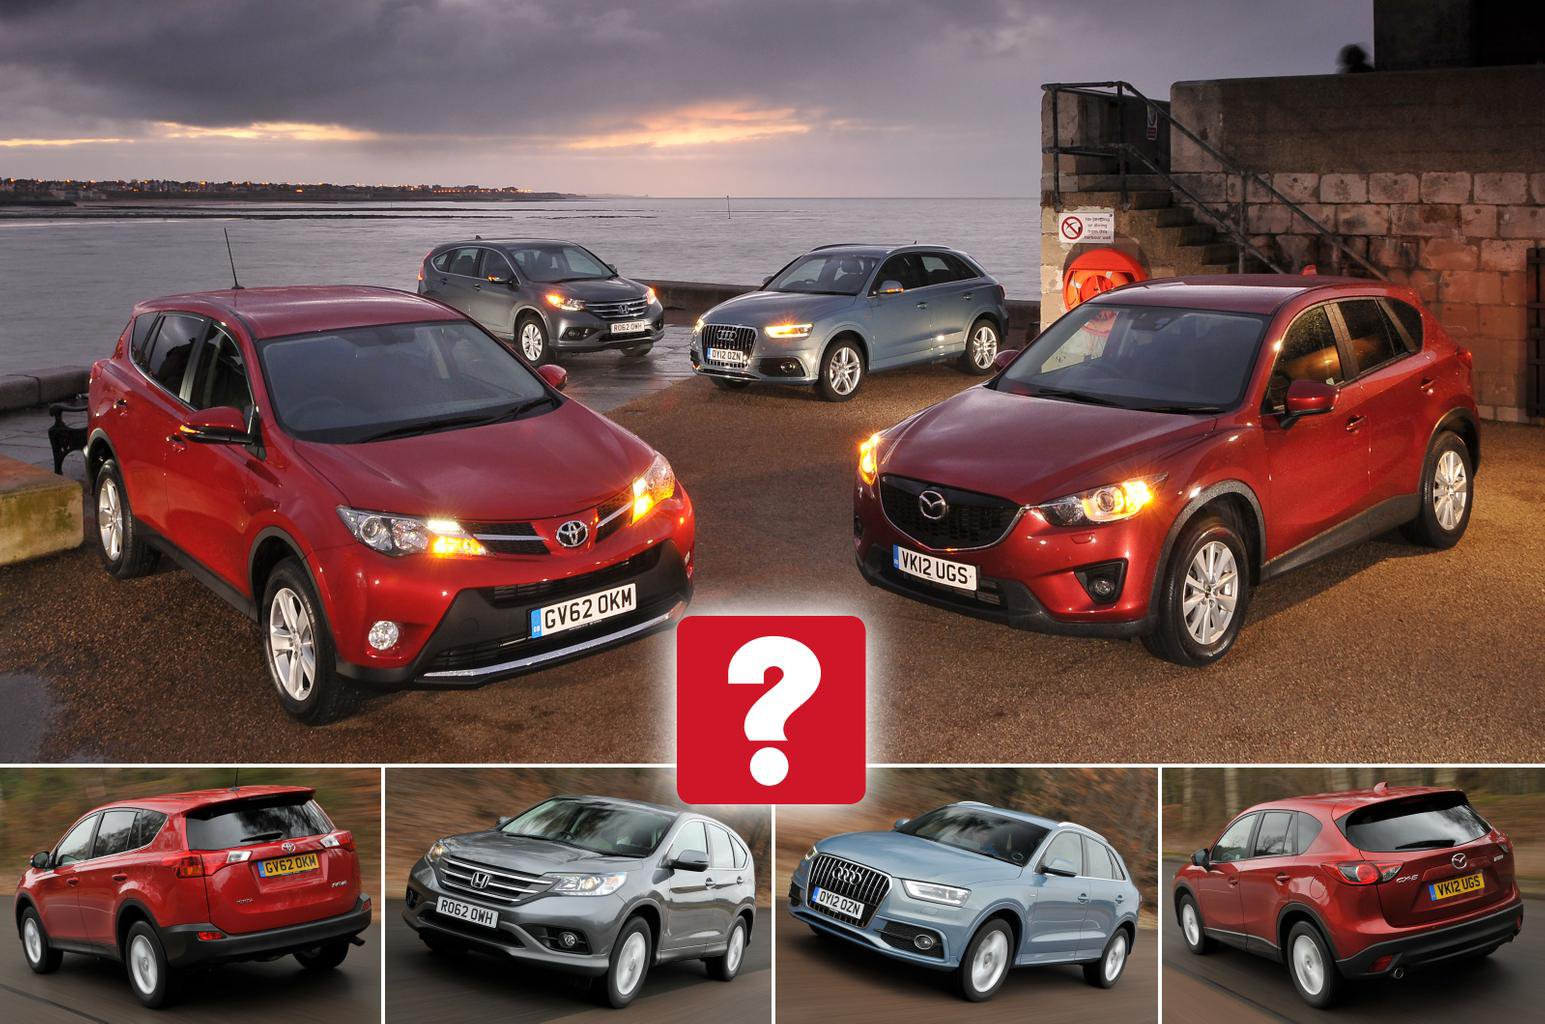 Used Honda CR-V vs Audi Q3 vs Toyota RAV4 vs Mazda CX-5